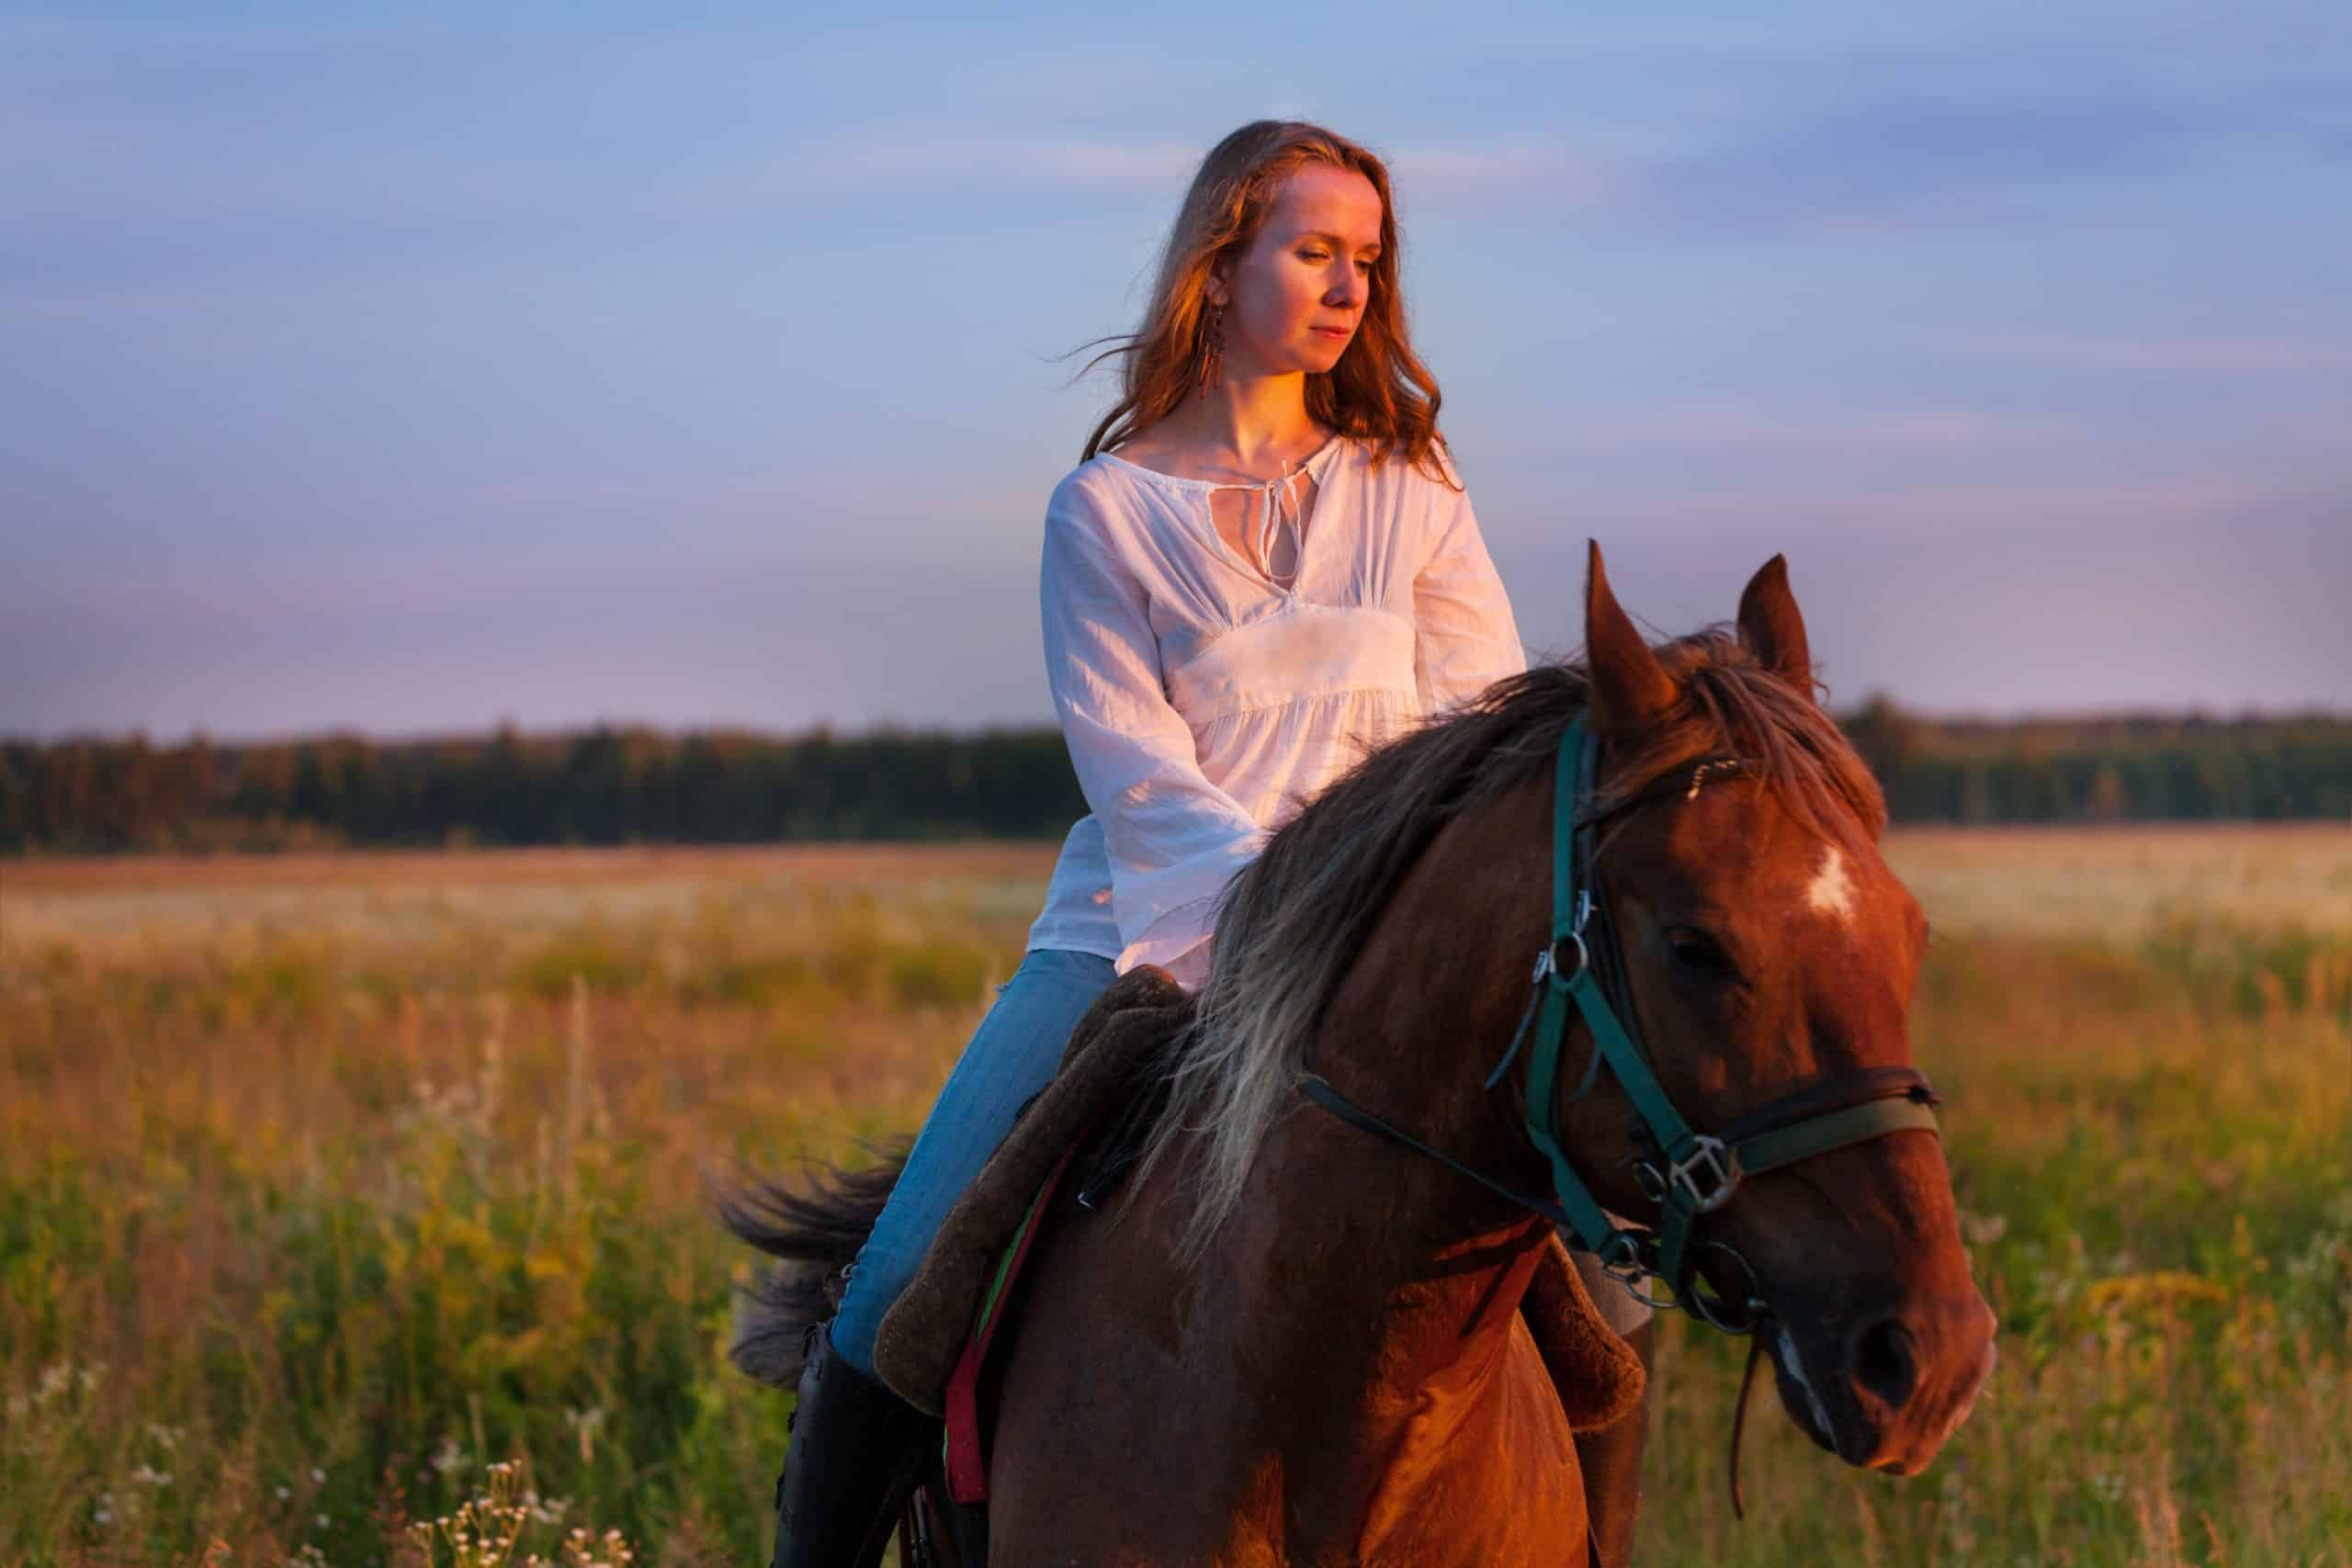 Portrait of beautiful female horseback rider with bay horse in a field at sunset